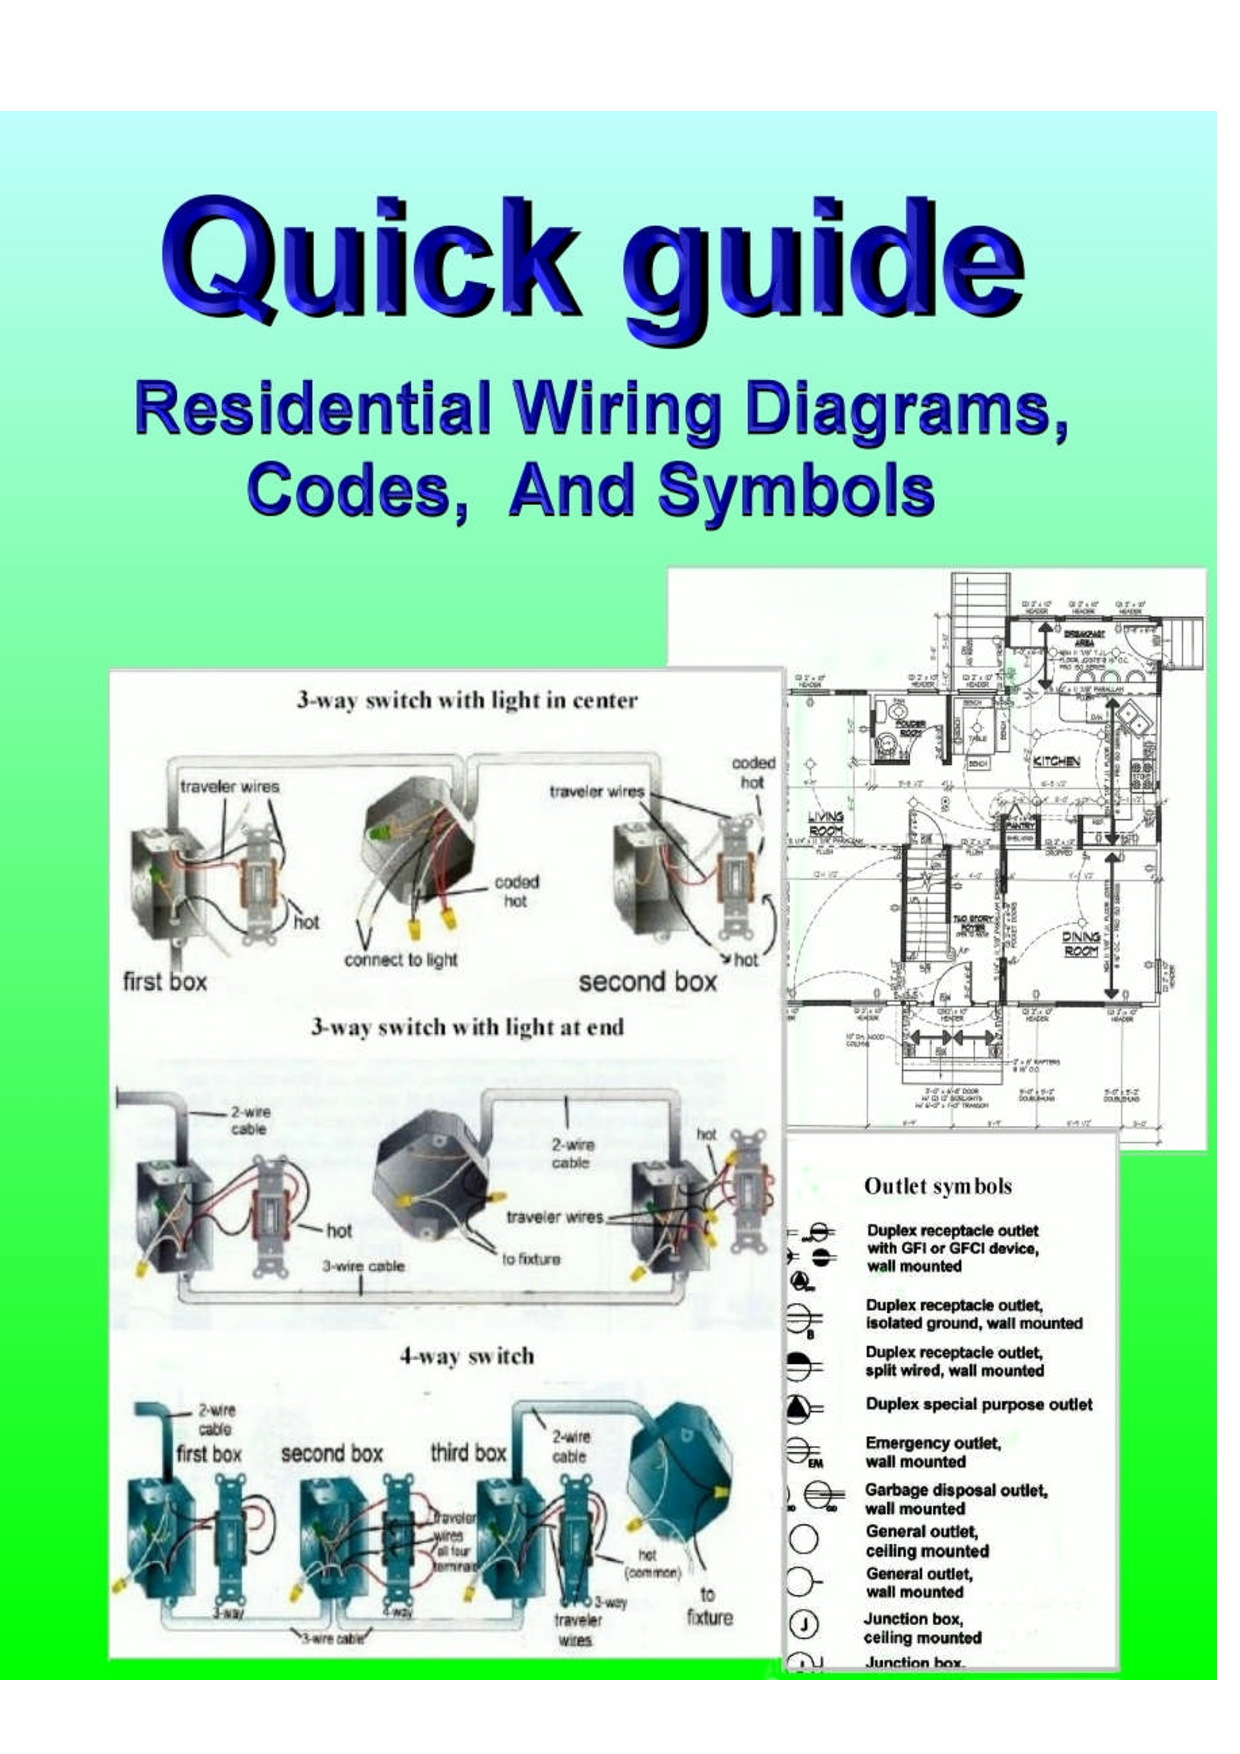 home electrical wiring diagrams pdf download legal documents 39 rh pinterest com electrical wiring diagram software electrical wiring diagrams